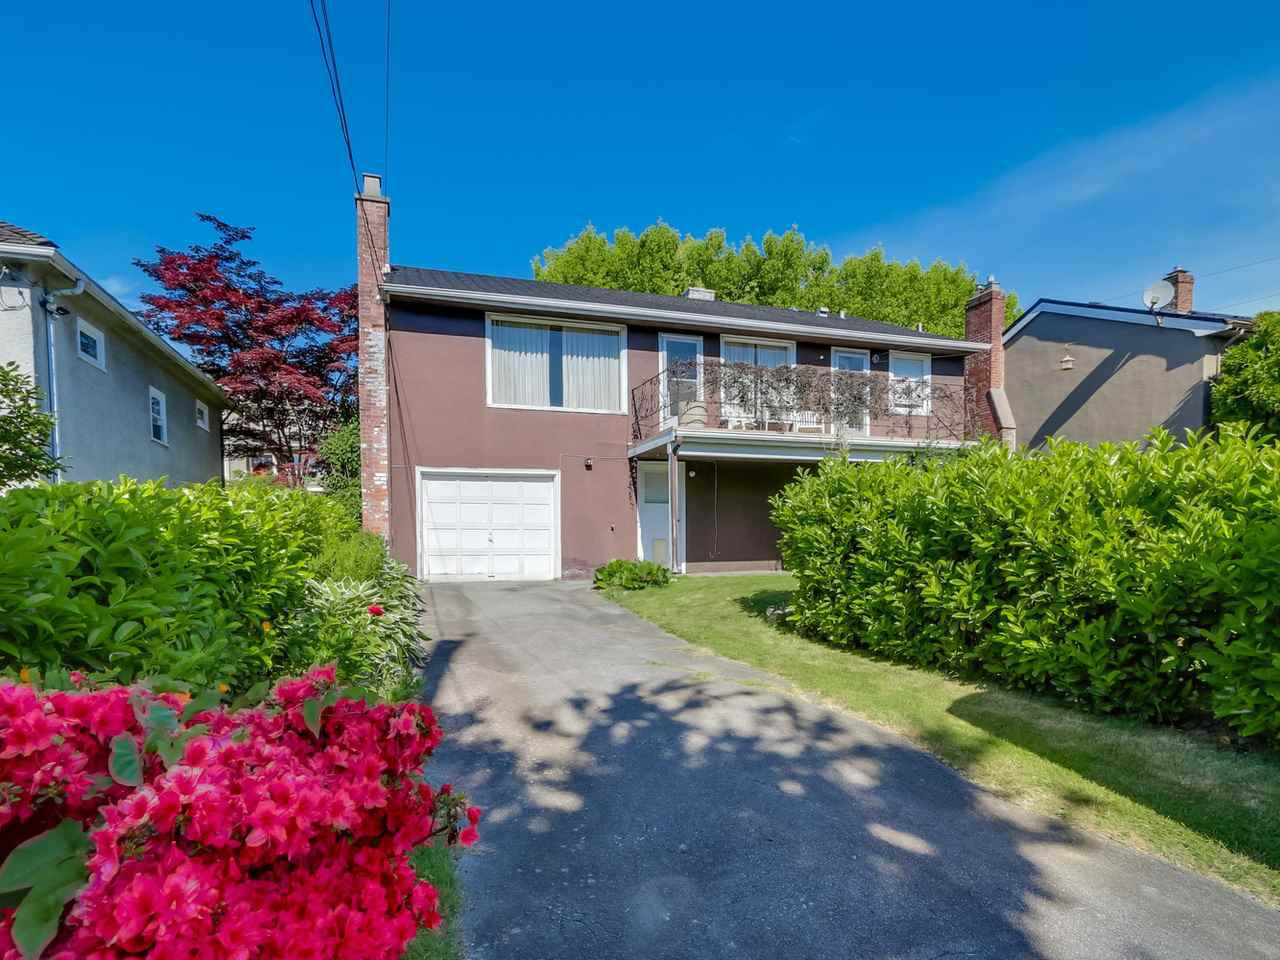 Photo 20: Photos: 824 CHESTNUT Street in New Westminster: The Heights NW House for sale : MLS®# R2068160